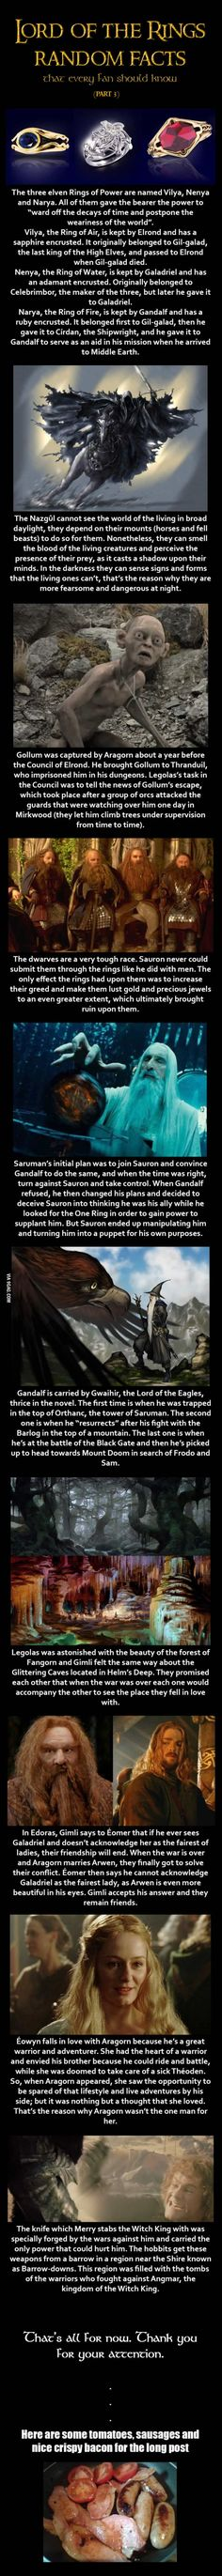 LORD OF THE RINGS Facts that Every Fan Should Know2